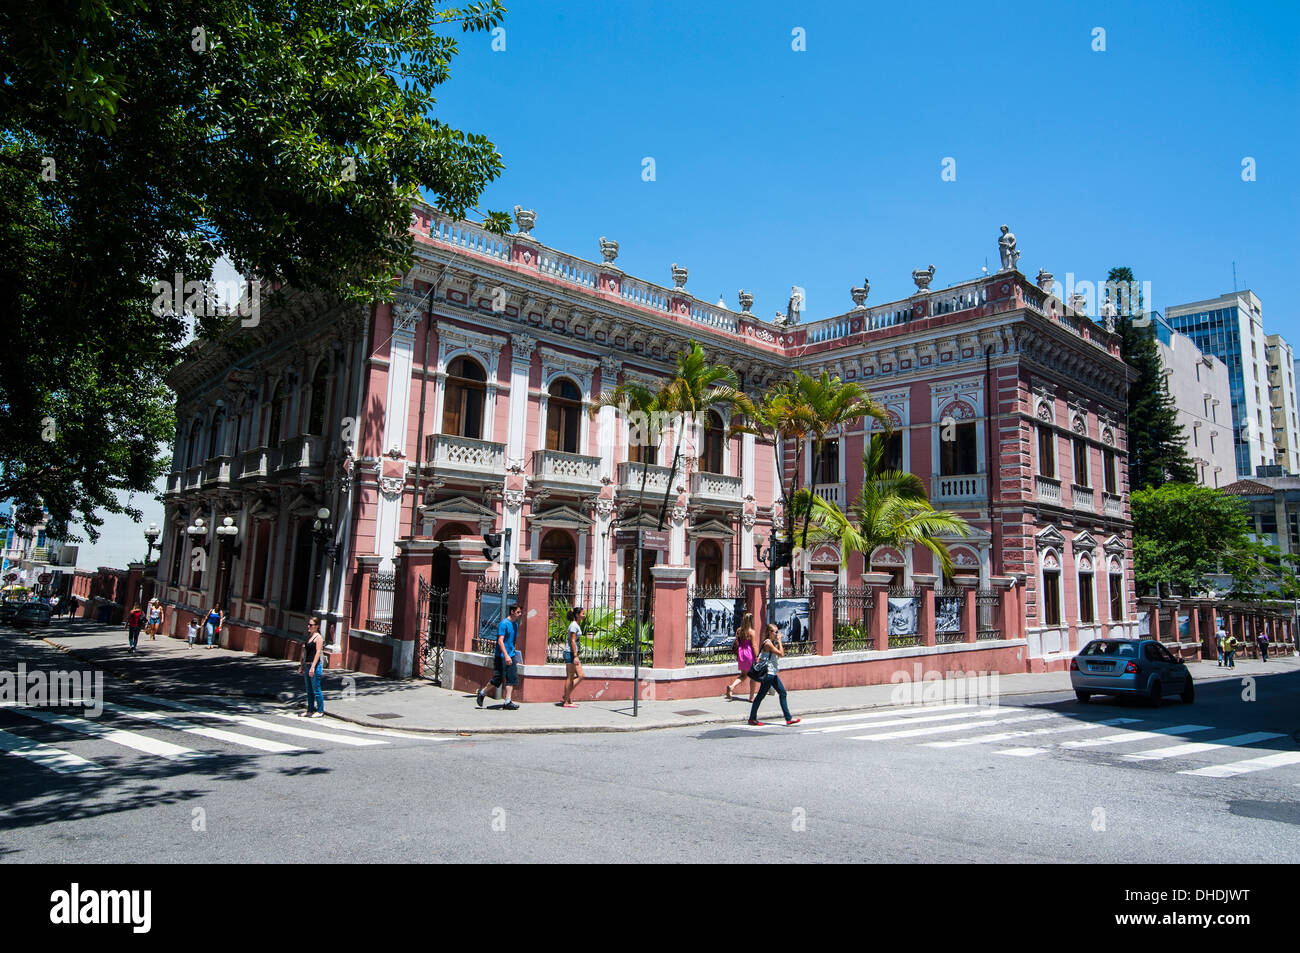 Facade of the Cruz e Sousa Palace in Florianopolis, Santa Catarina State, Brazil - Stock Image